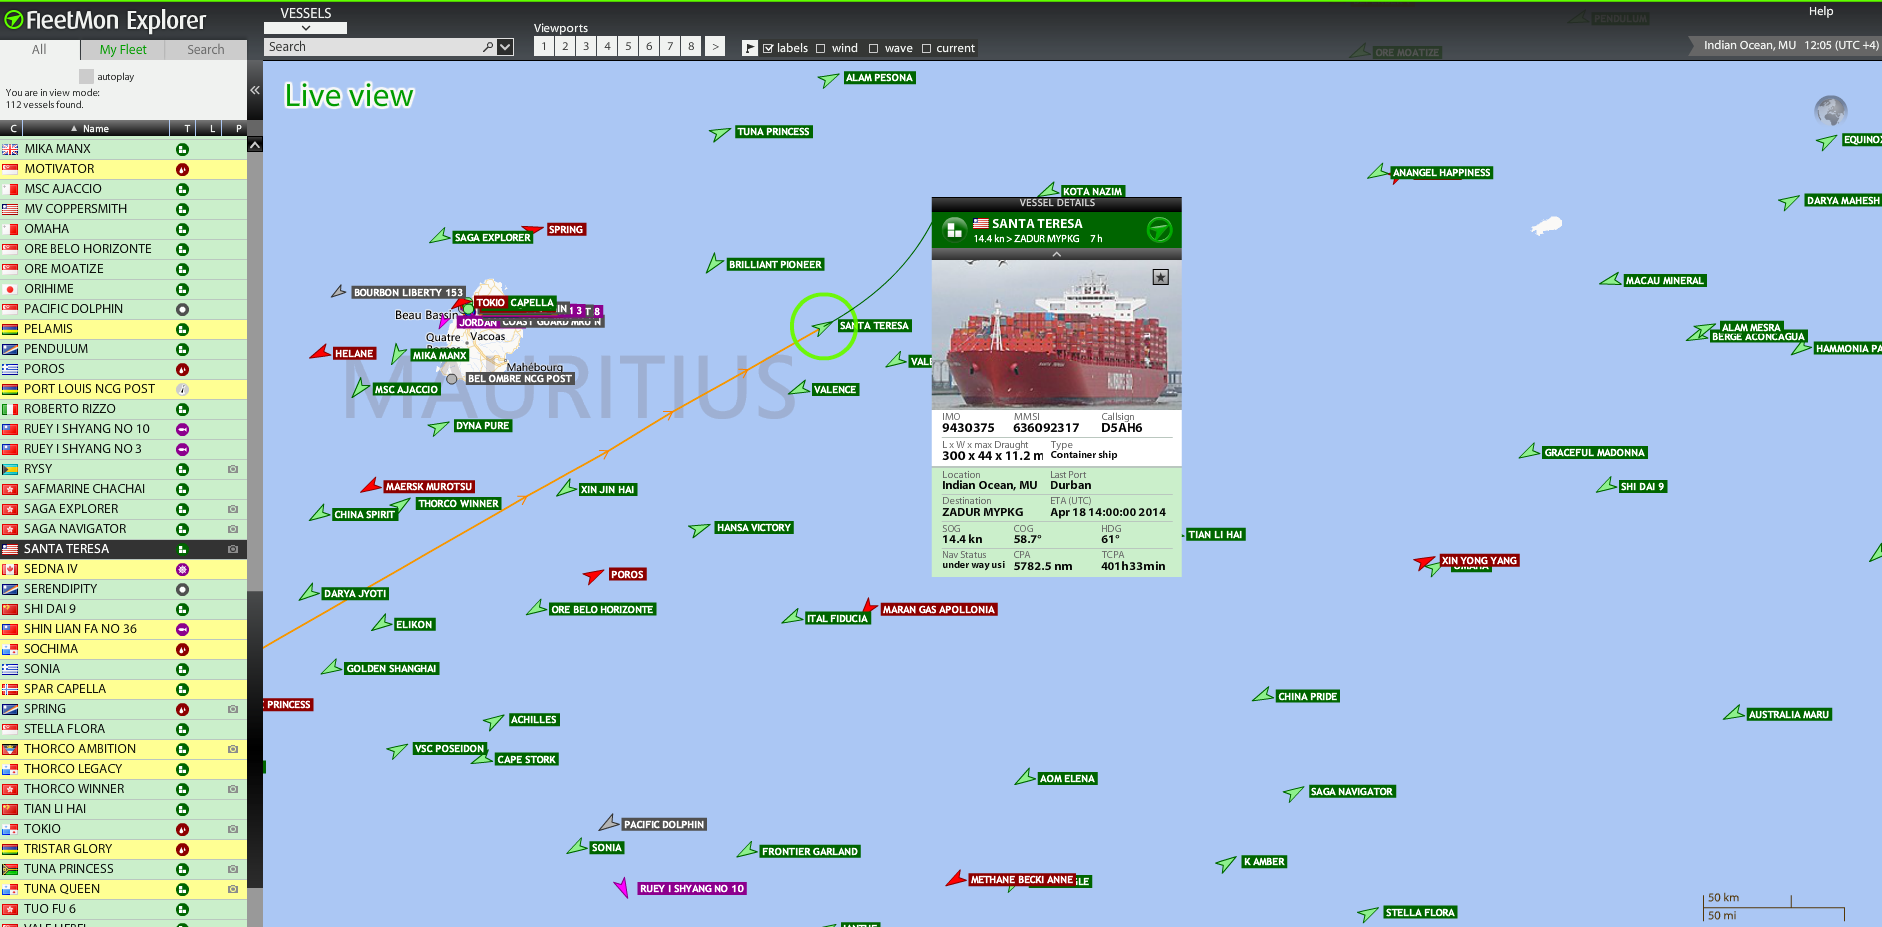 FMX - All vessels, all tracks, all voyage details globally